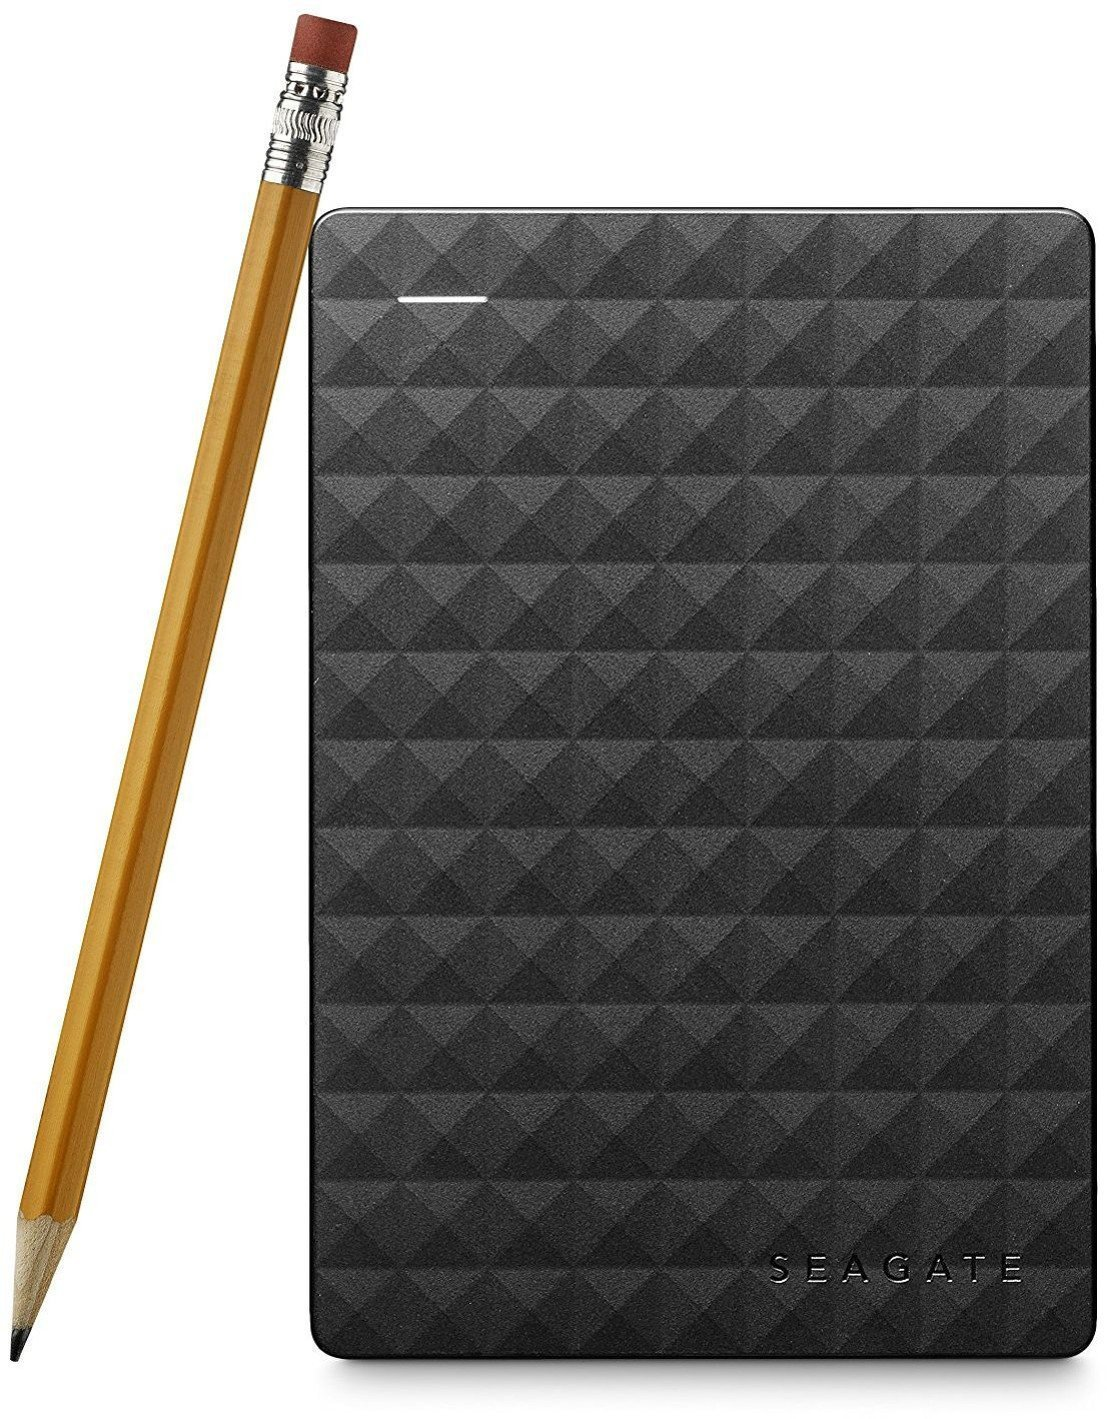 Seagate Expansion Portable USB 3.0 2.5in 1TB External Hard Drive - STEA1000400 (Renewed) by Seagate (Image #4)